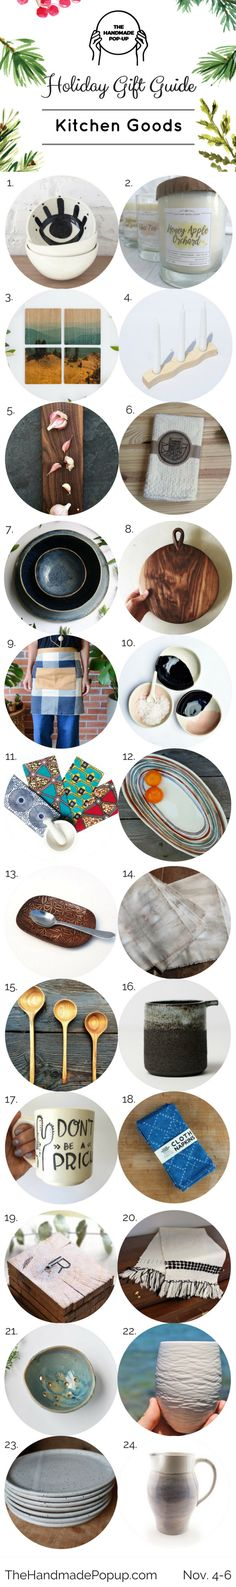 Holiday Gift Guide Kitchen Goods The Handmade Popup 2016